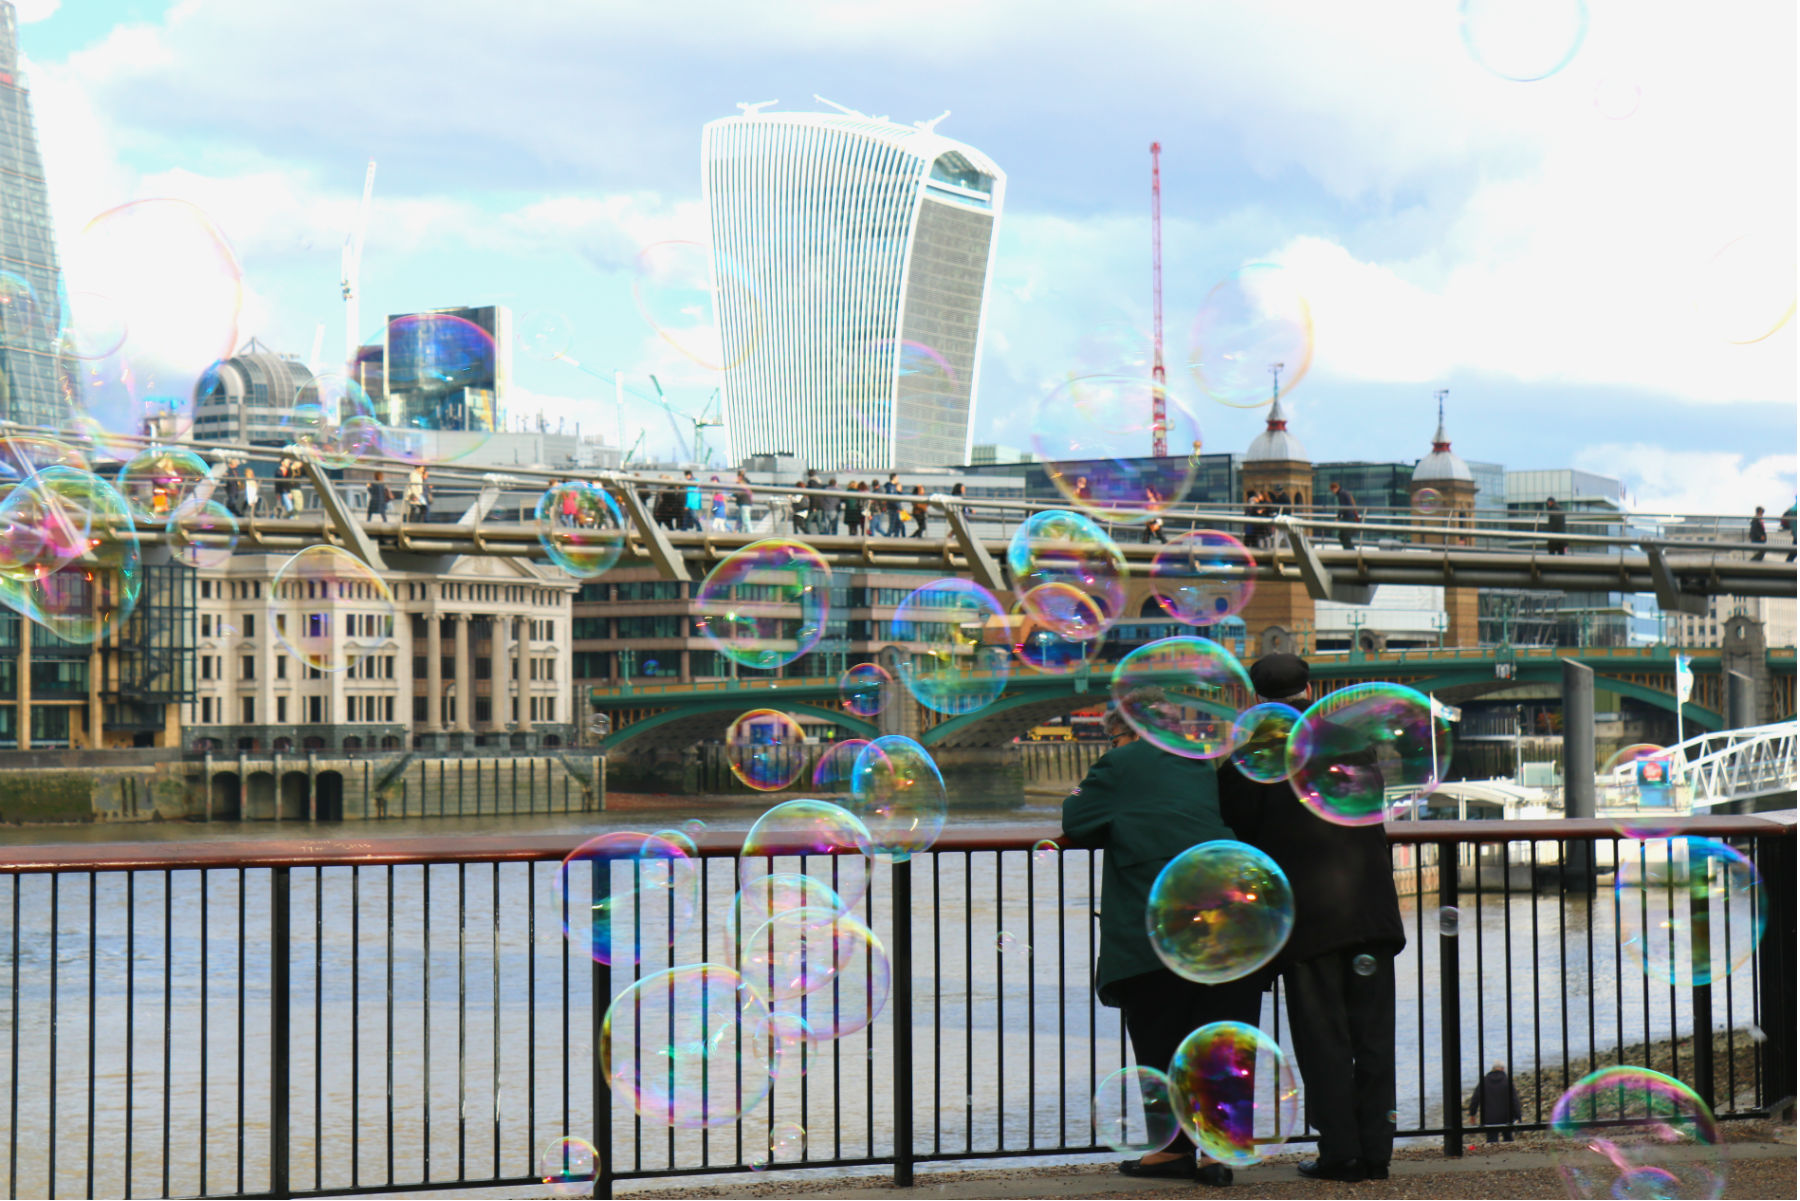 Old couple looking towards Millennium Bridge with bubbles in the foreground